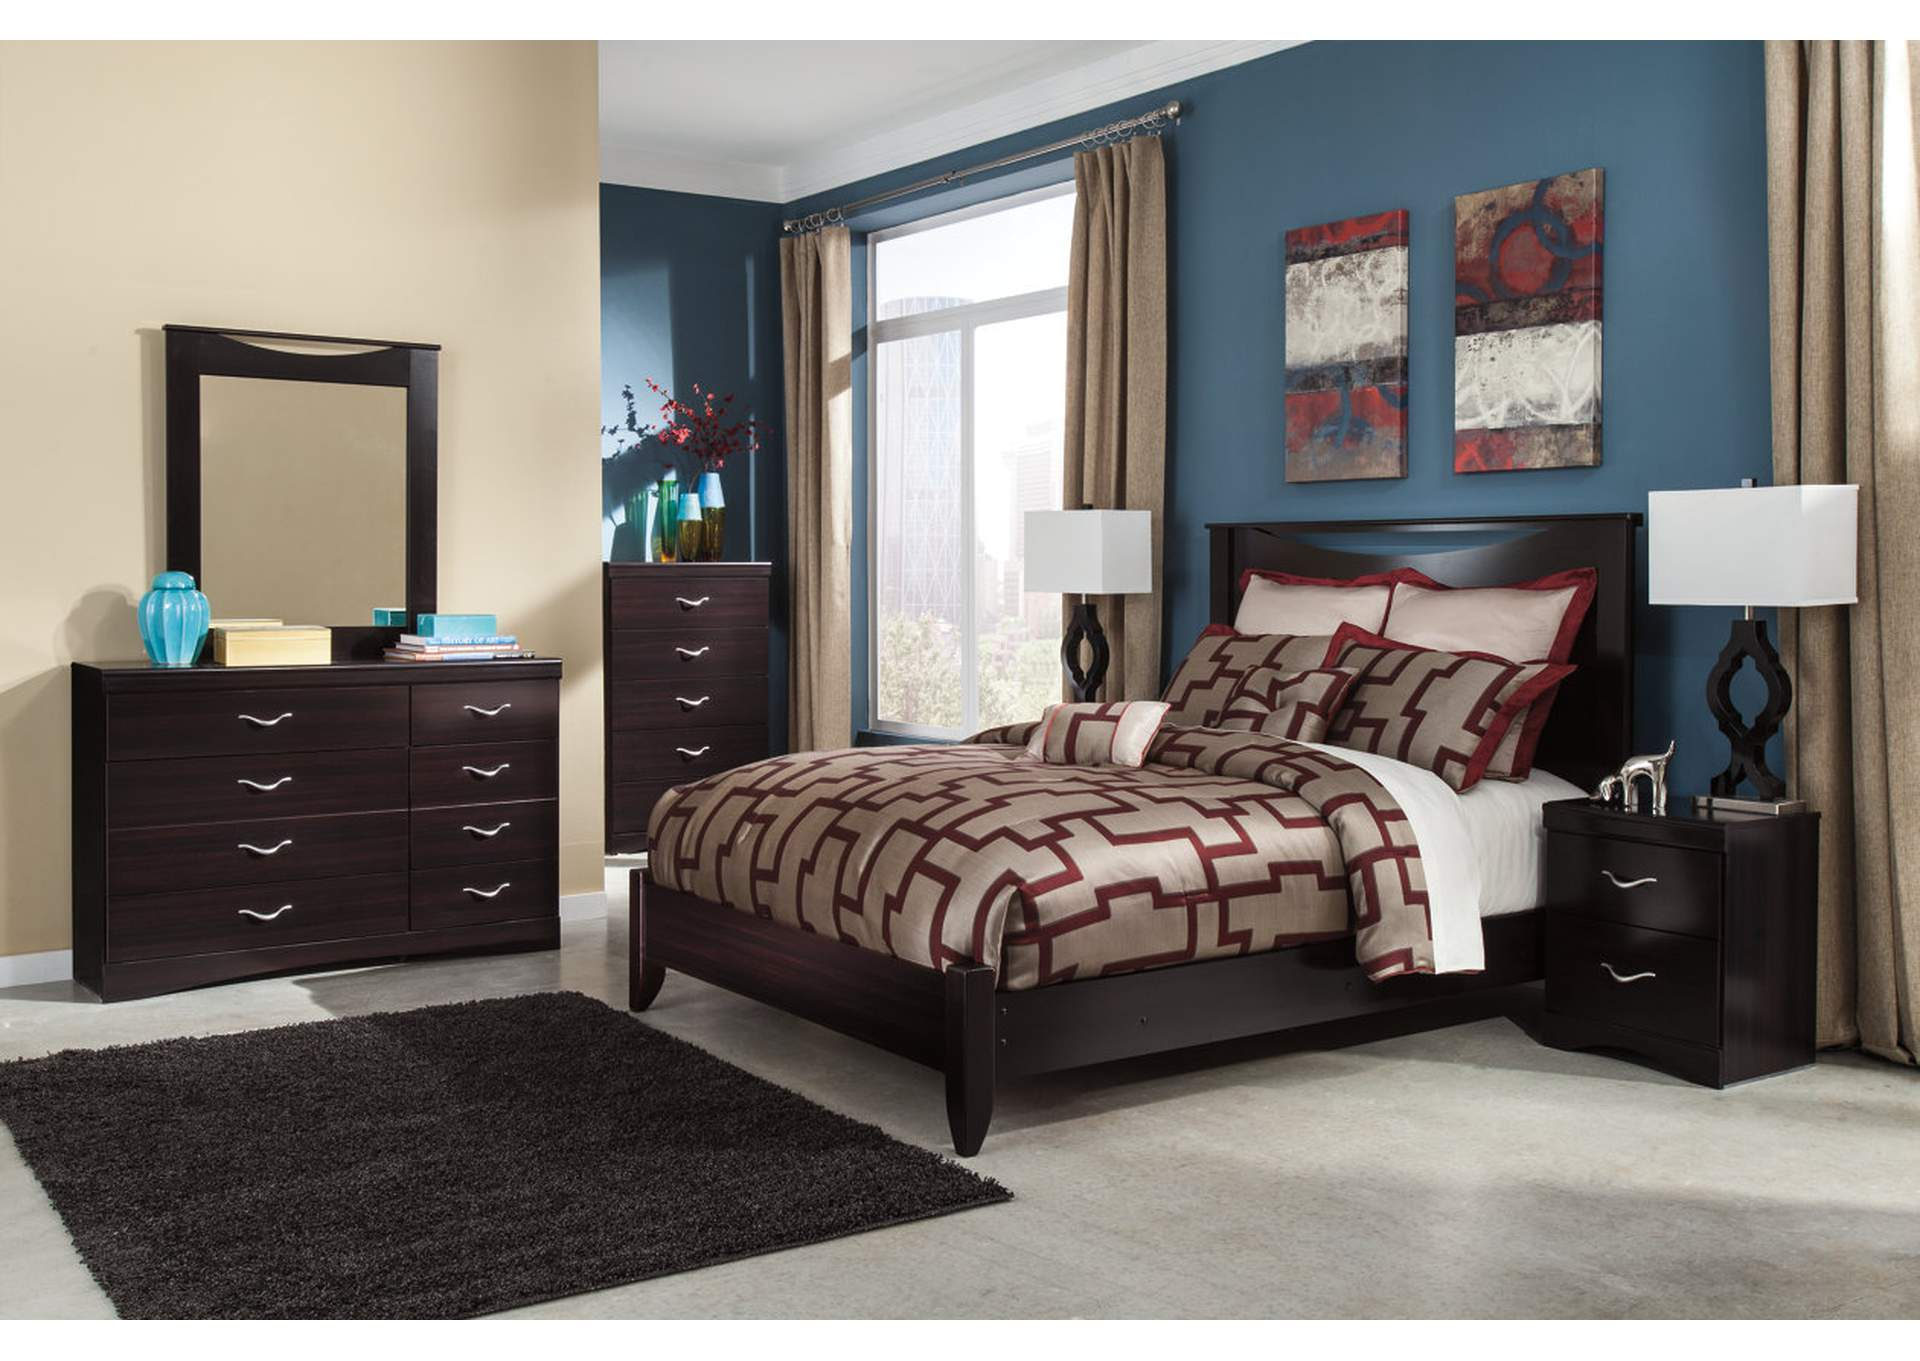 Zanbury Queen Panel Bed w/Dresser, Mirror & Nightstand,Signature Design By Ashley